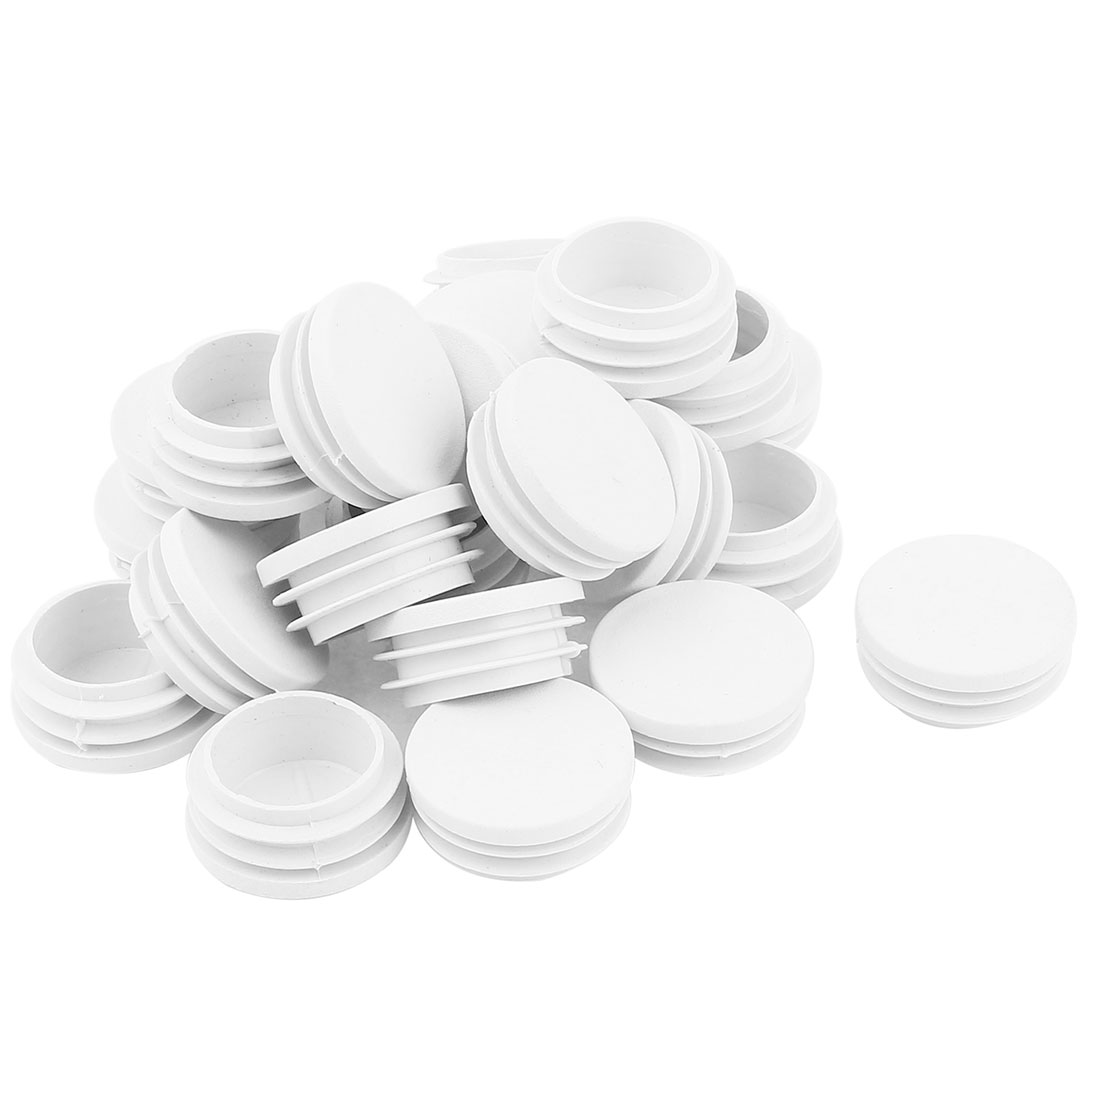 24 Pcs White Plastic 32mm Dia Round Tubing Tube Insert Cap Cover